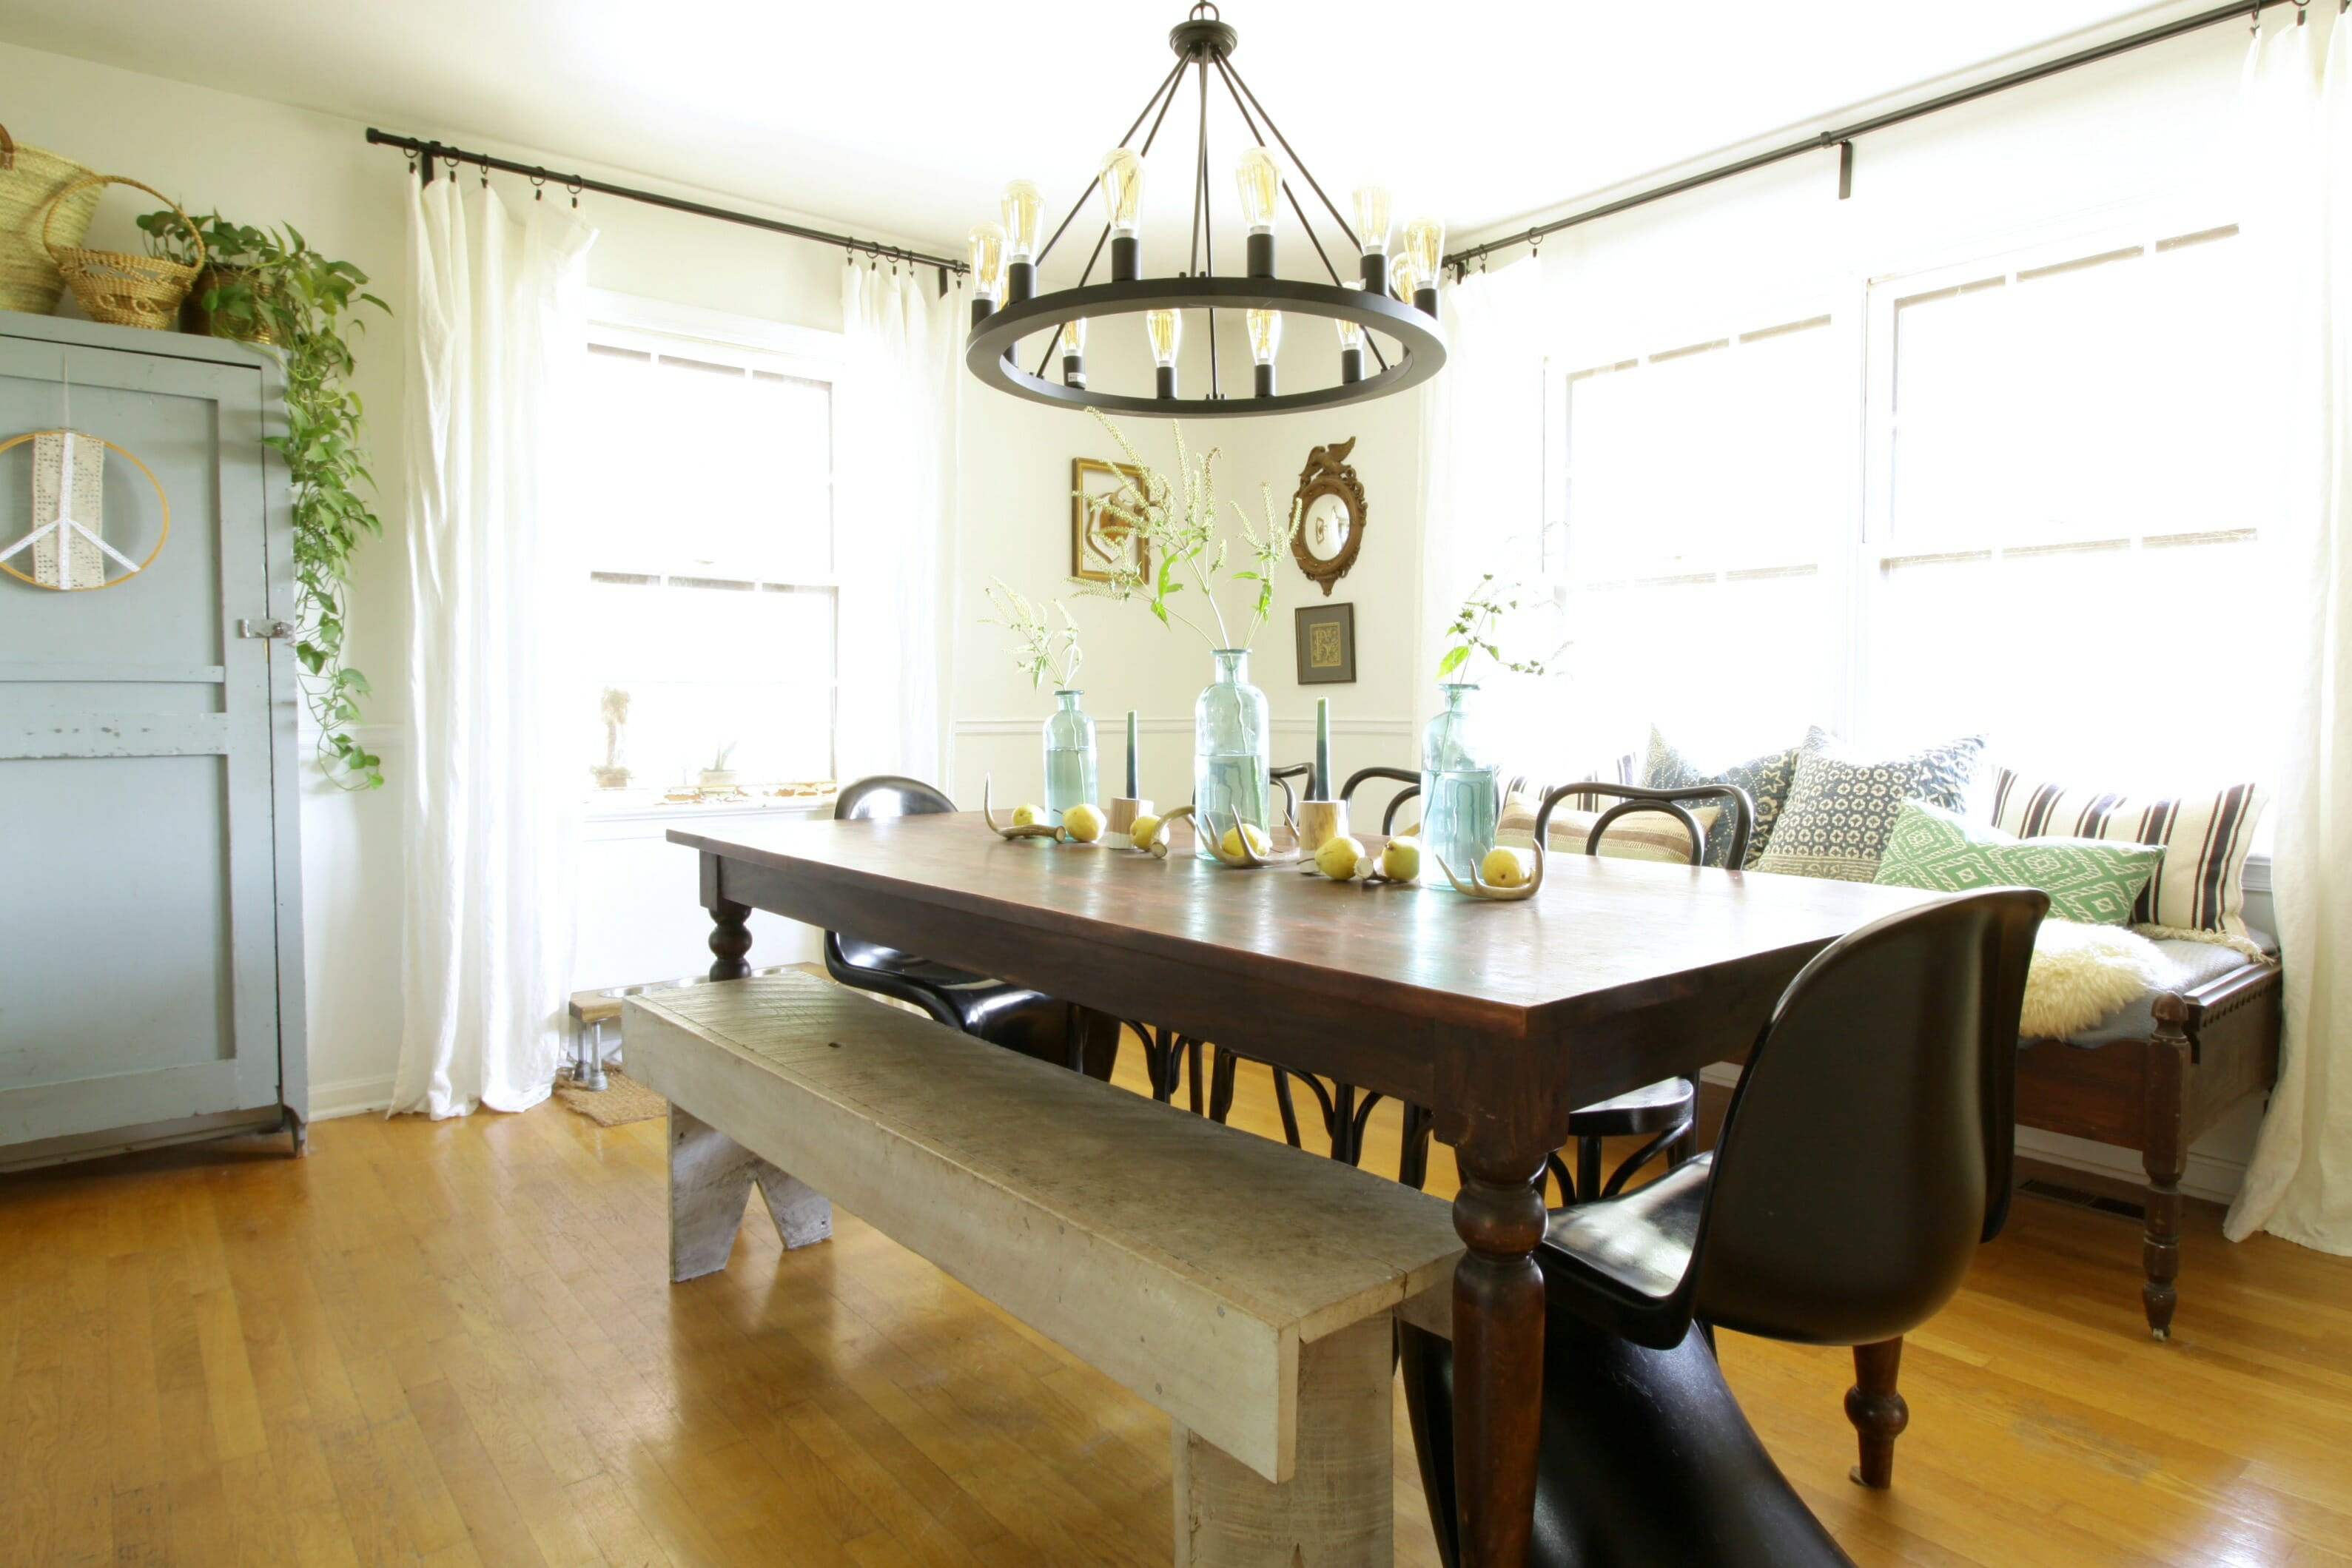 Modern Farmhouse Dining Room: Eclectically Fall Home Tour